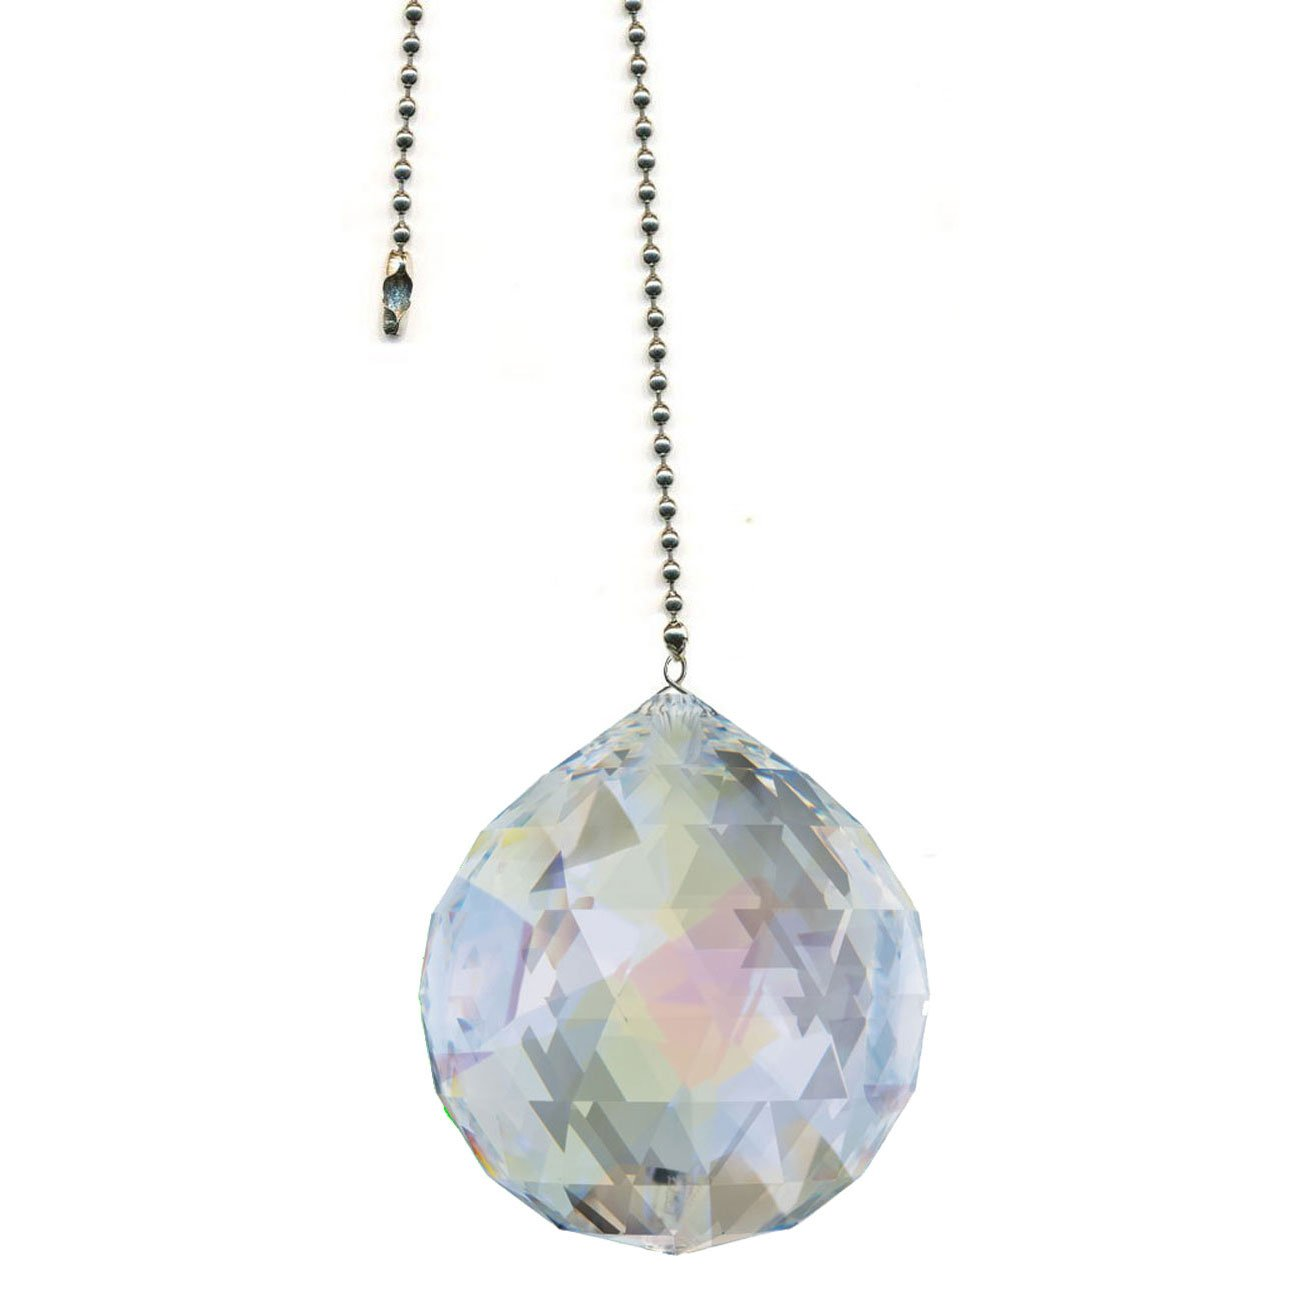 Swarovski 30mm Aurora Borealis Faceted Crystal Ball Prism Dazzling Crystal Ceiling FAN Pull Chain by CrystalPlace